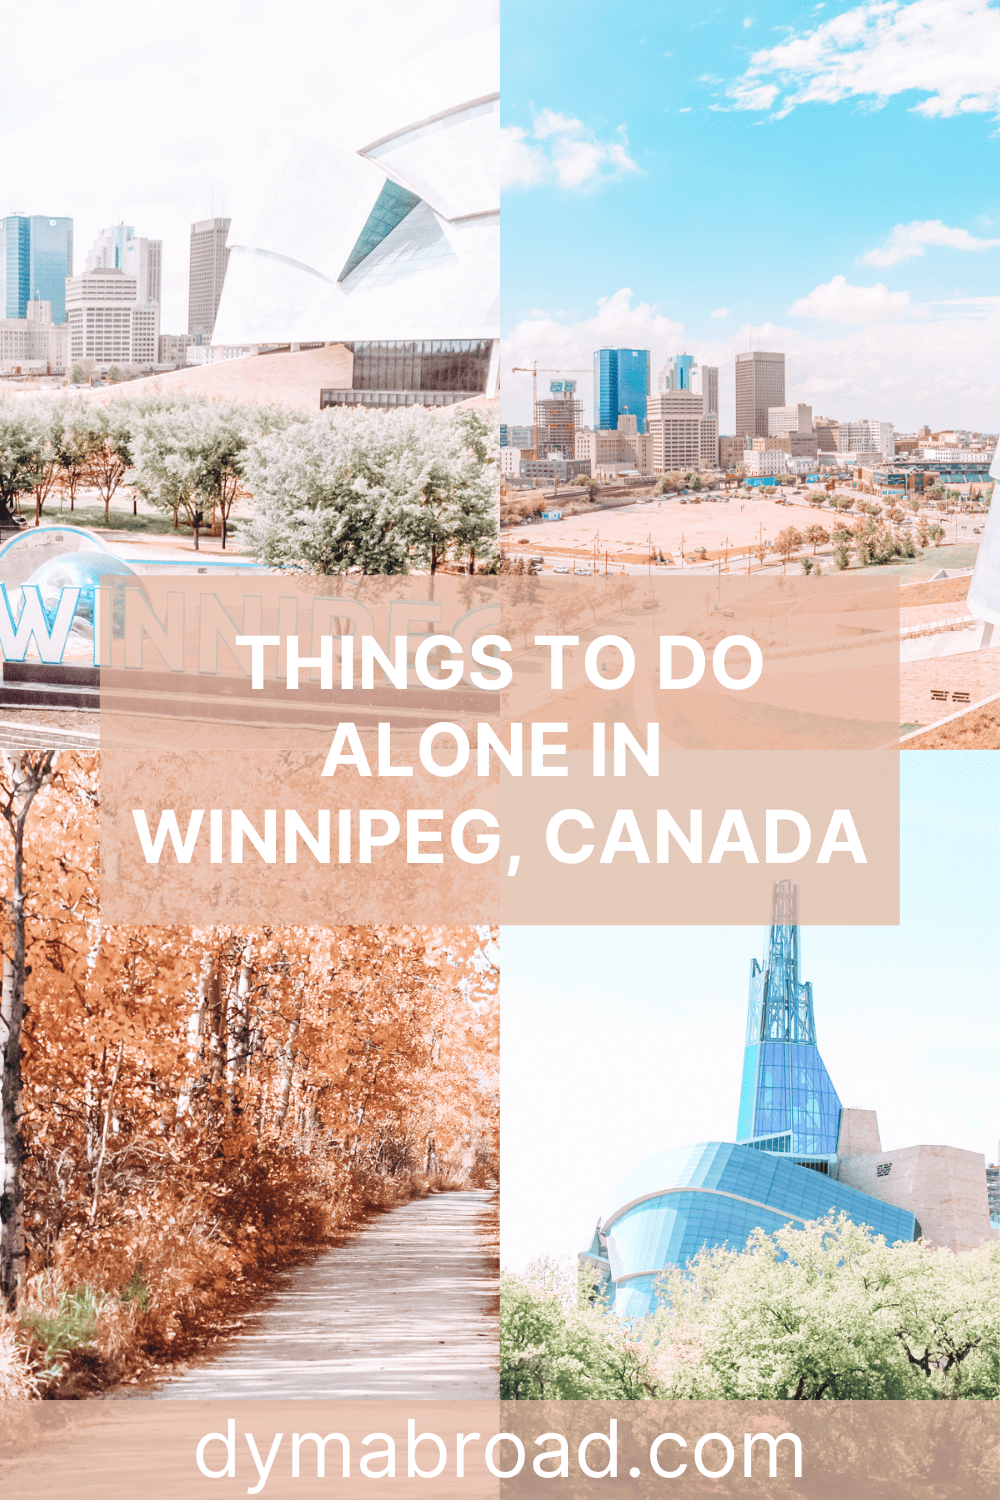 Things to do alone in Winnipeg Pinterest image